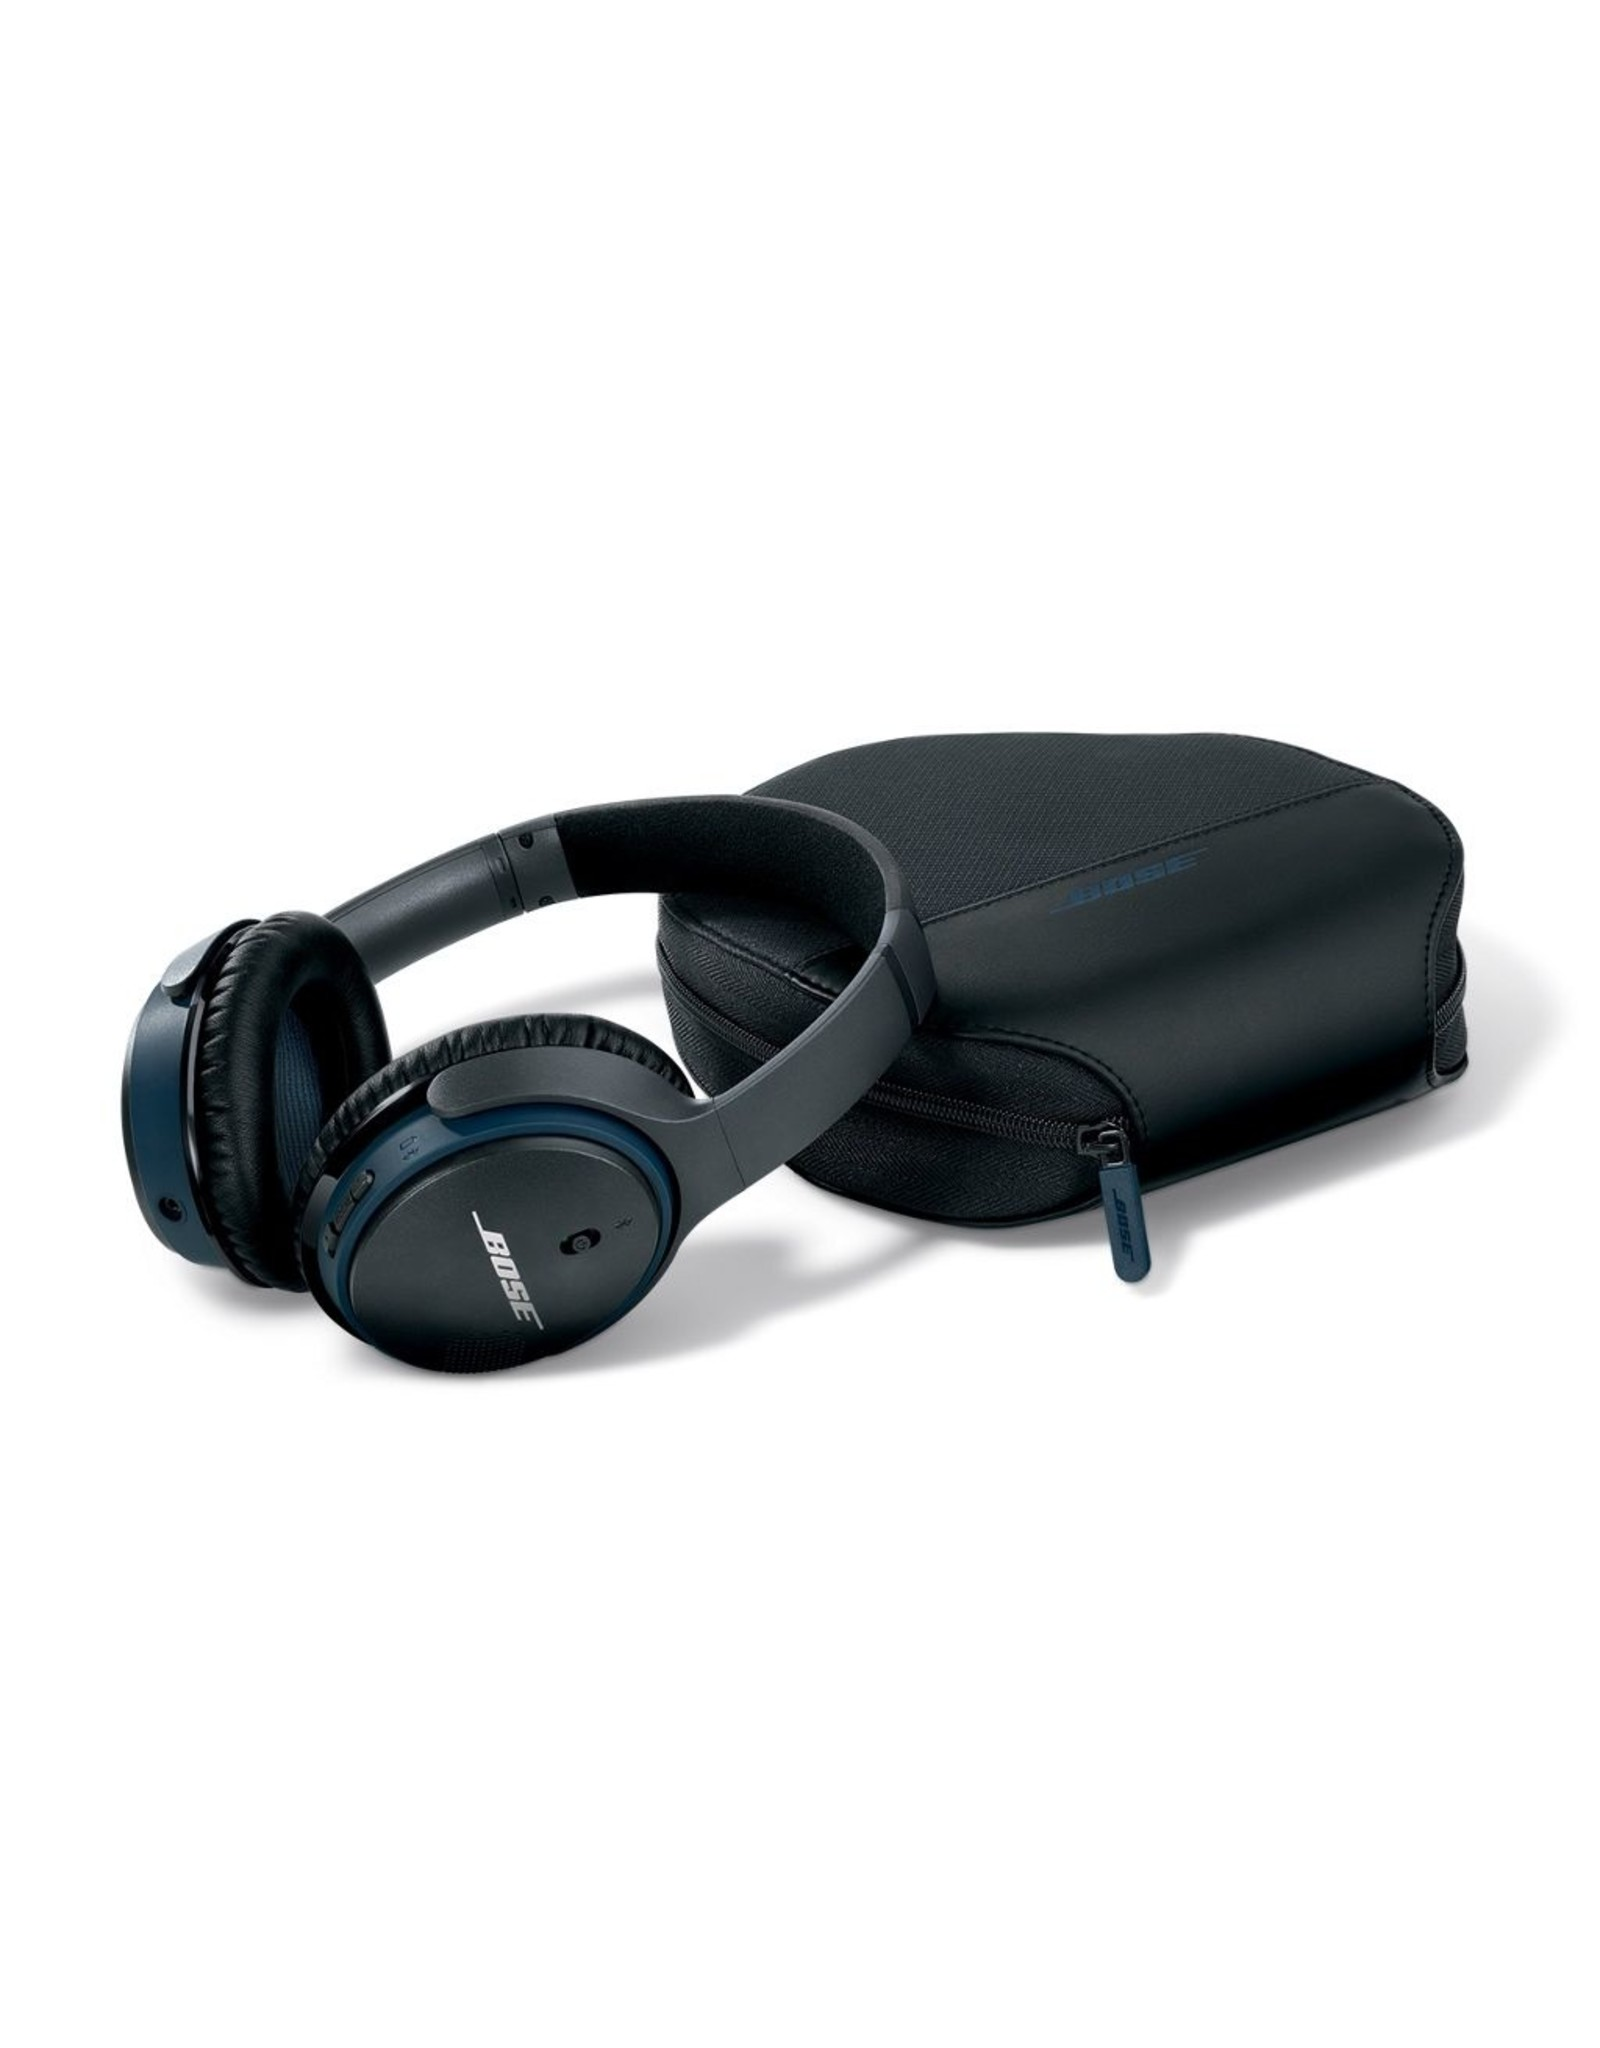 BOSE BOSE Soundlink Around- Ear S2 Wireless Headphones